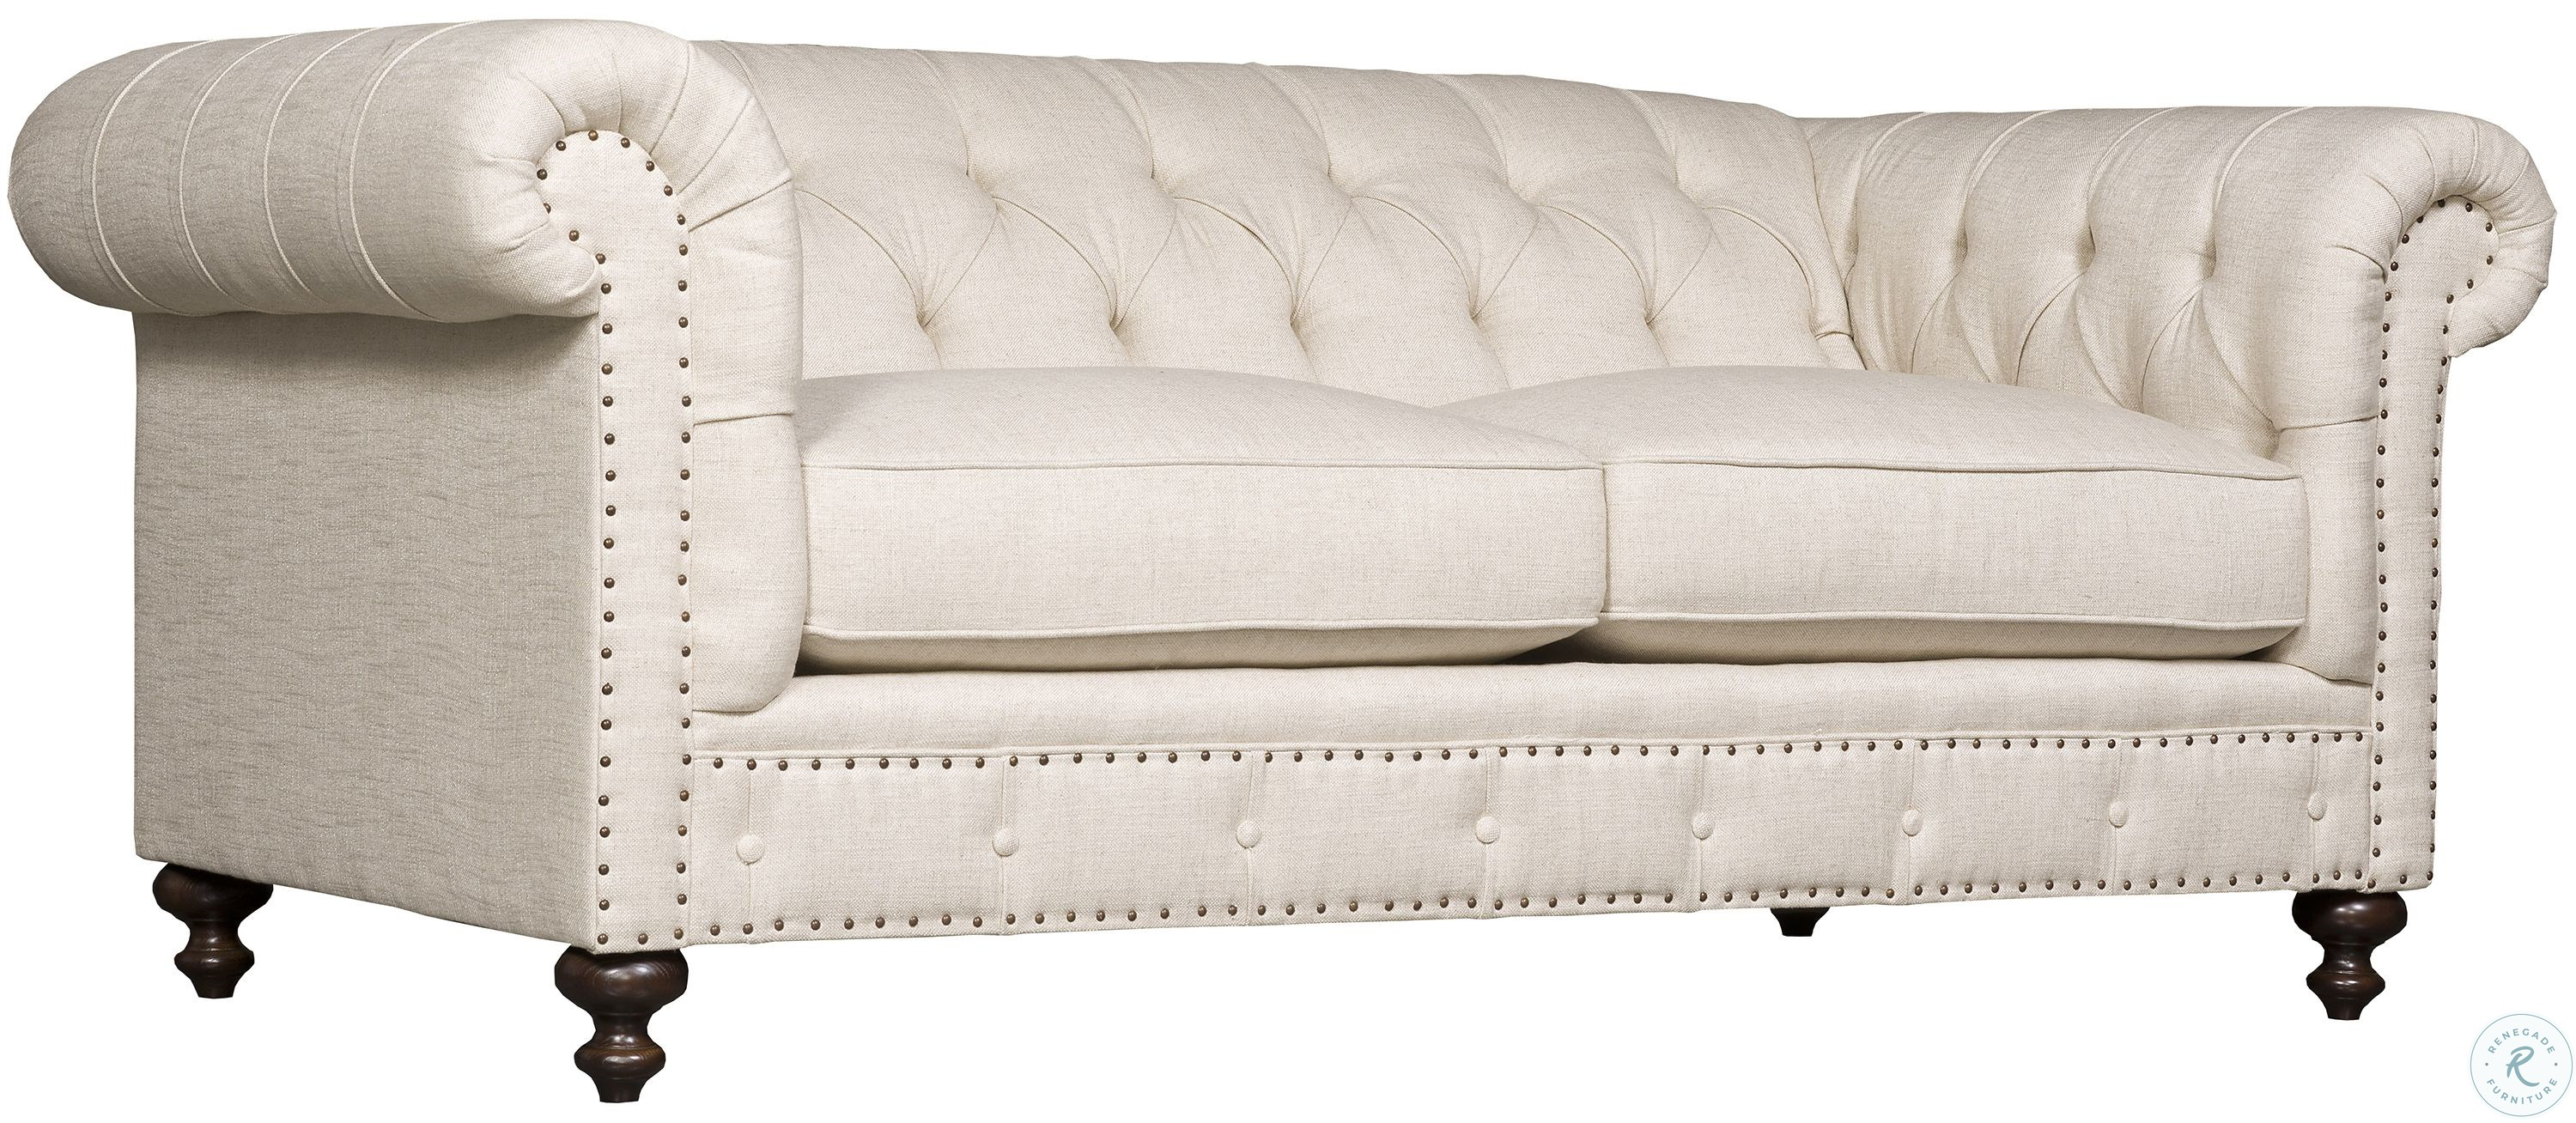 Terrific London Molasses Club Loveseat From Bernhardt Furniture Interior Design Ideas Clesiryabchikinfo